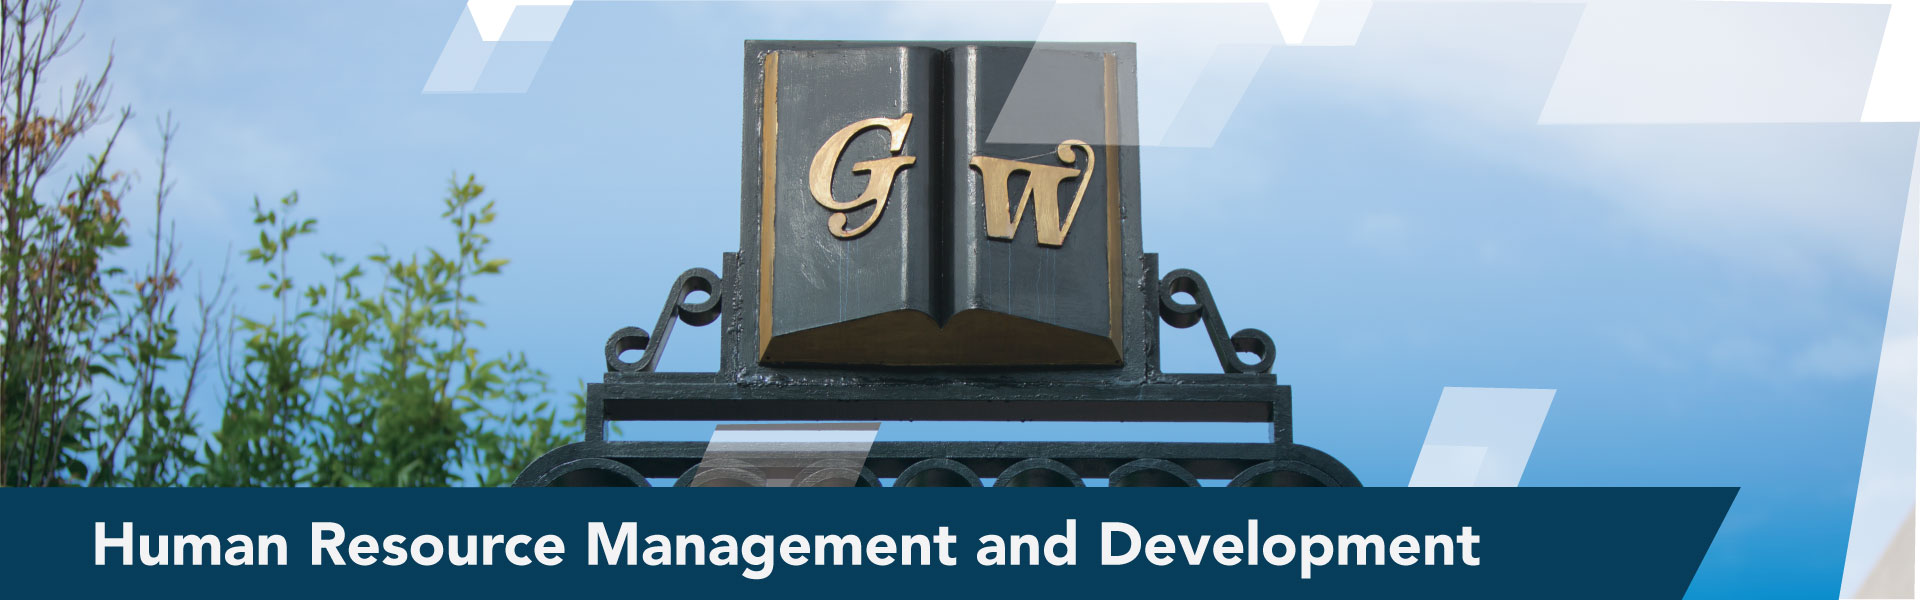 Image of GW Gate with Welcome to Human Resource and Management text